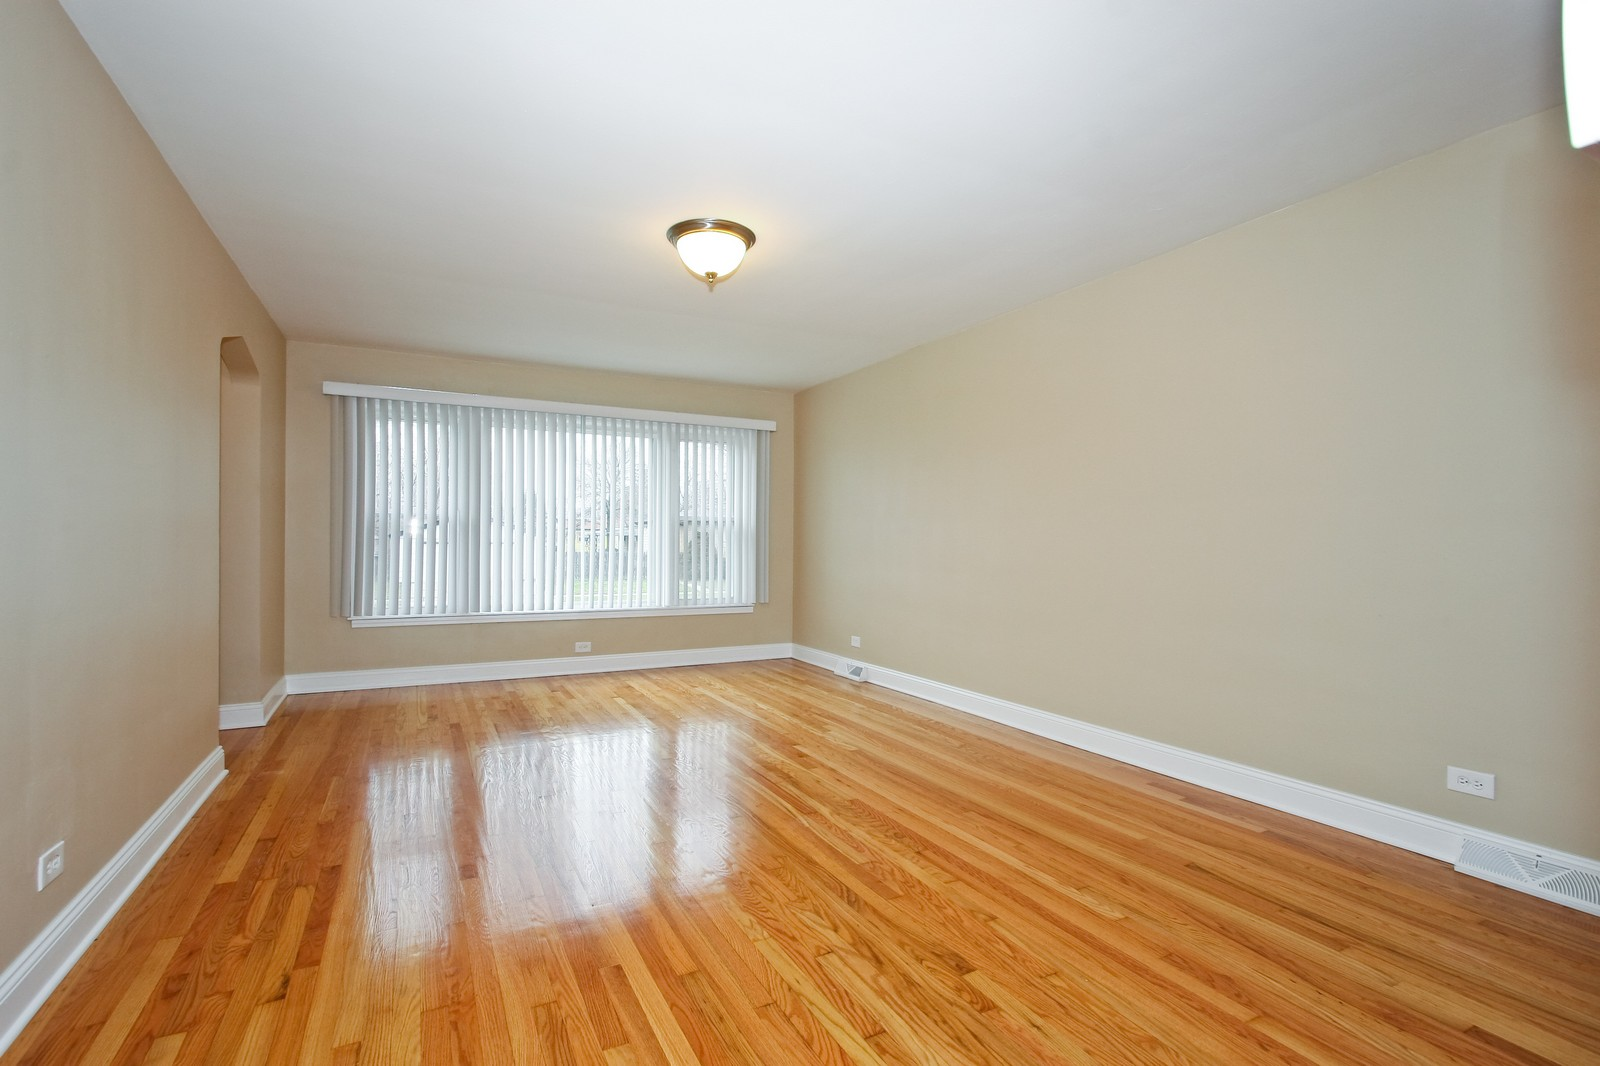 Real Estate Photography - 1025 E 156th St, Dolton, IL, 60419 - Living Room